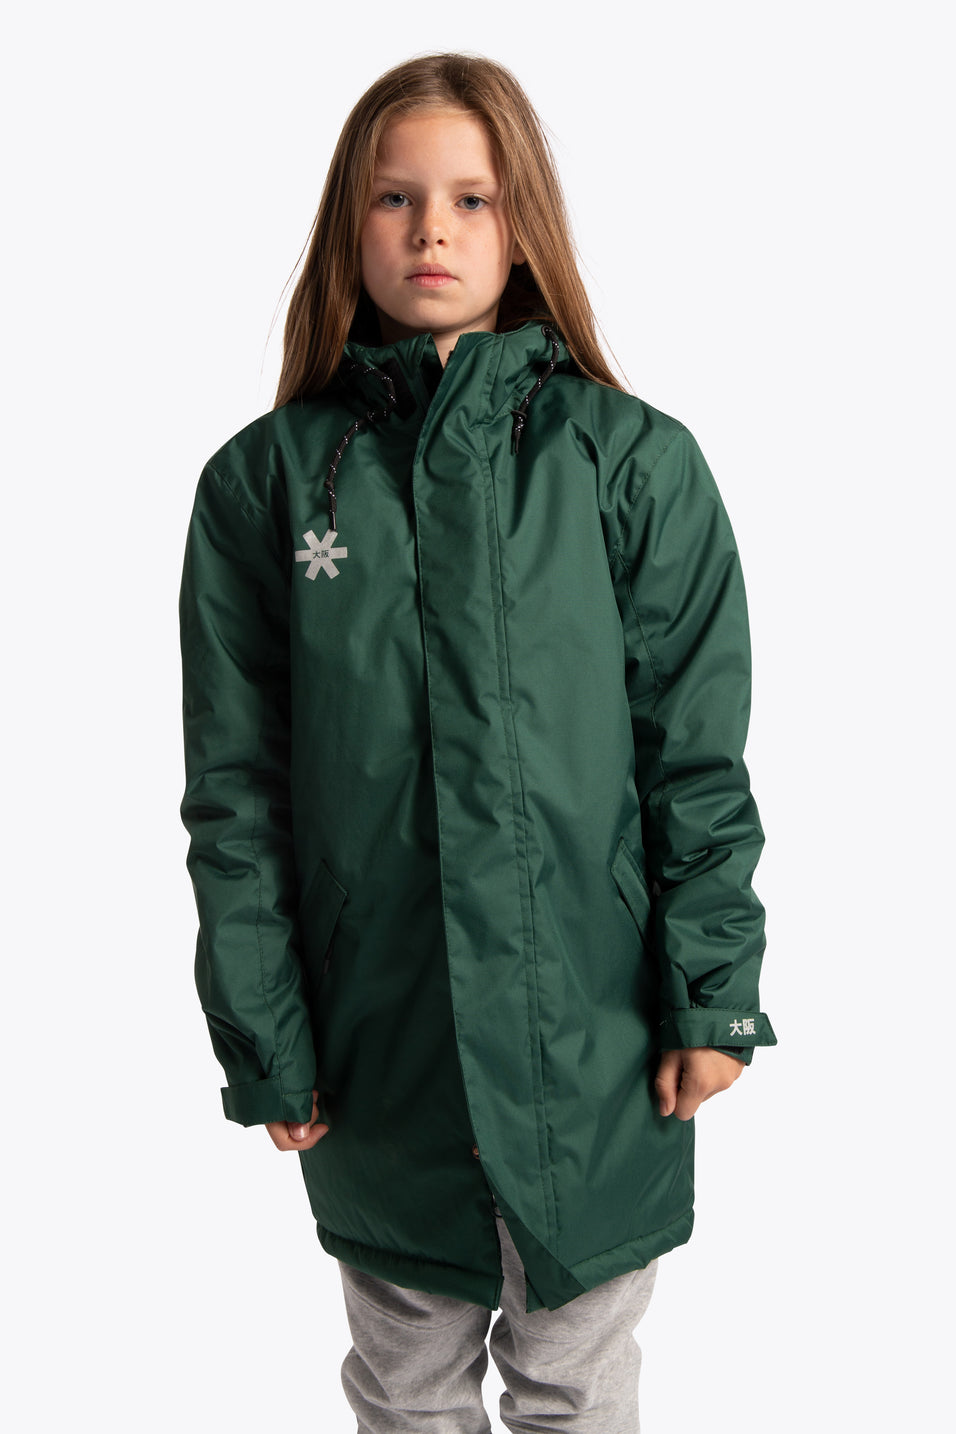 Best kid jackets